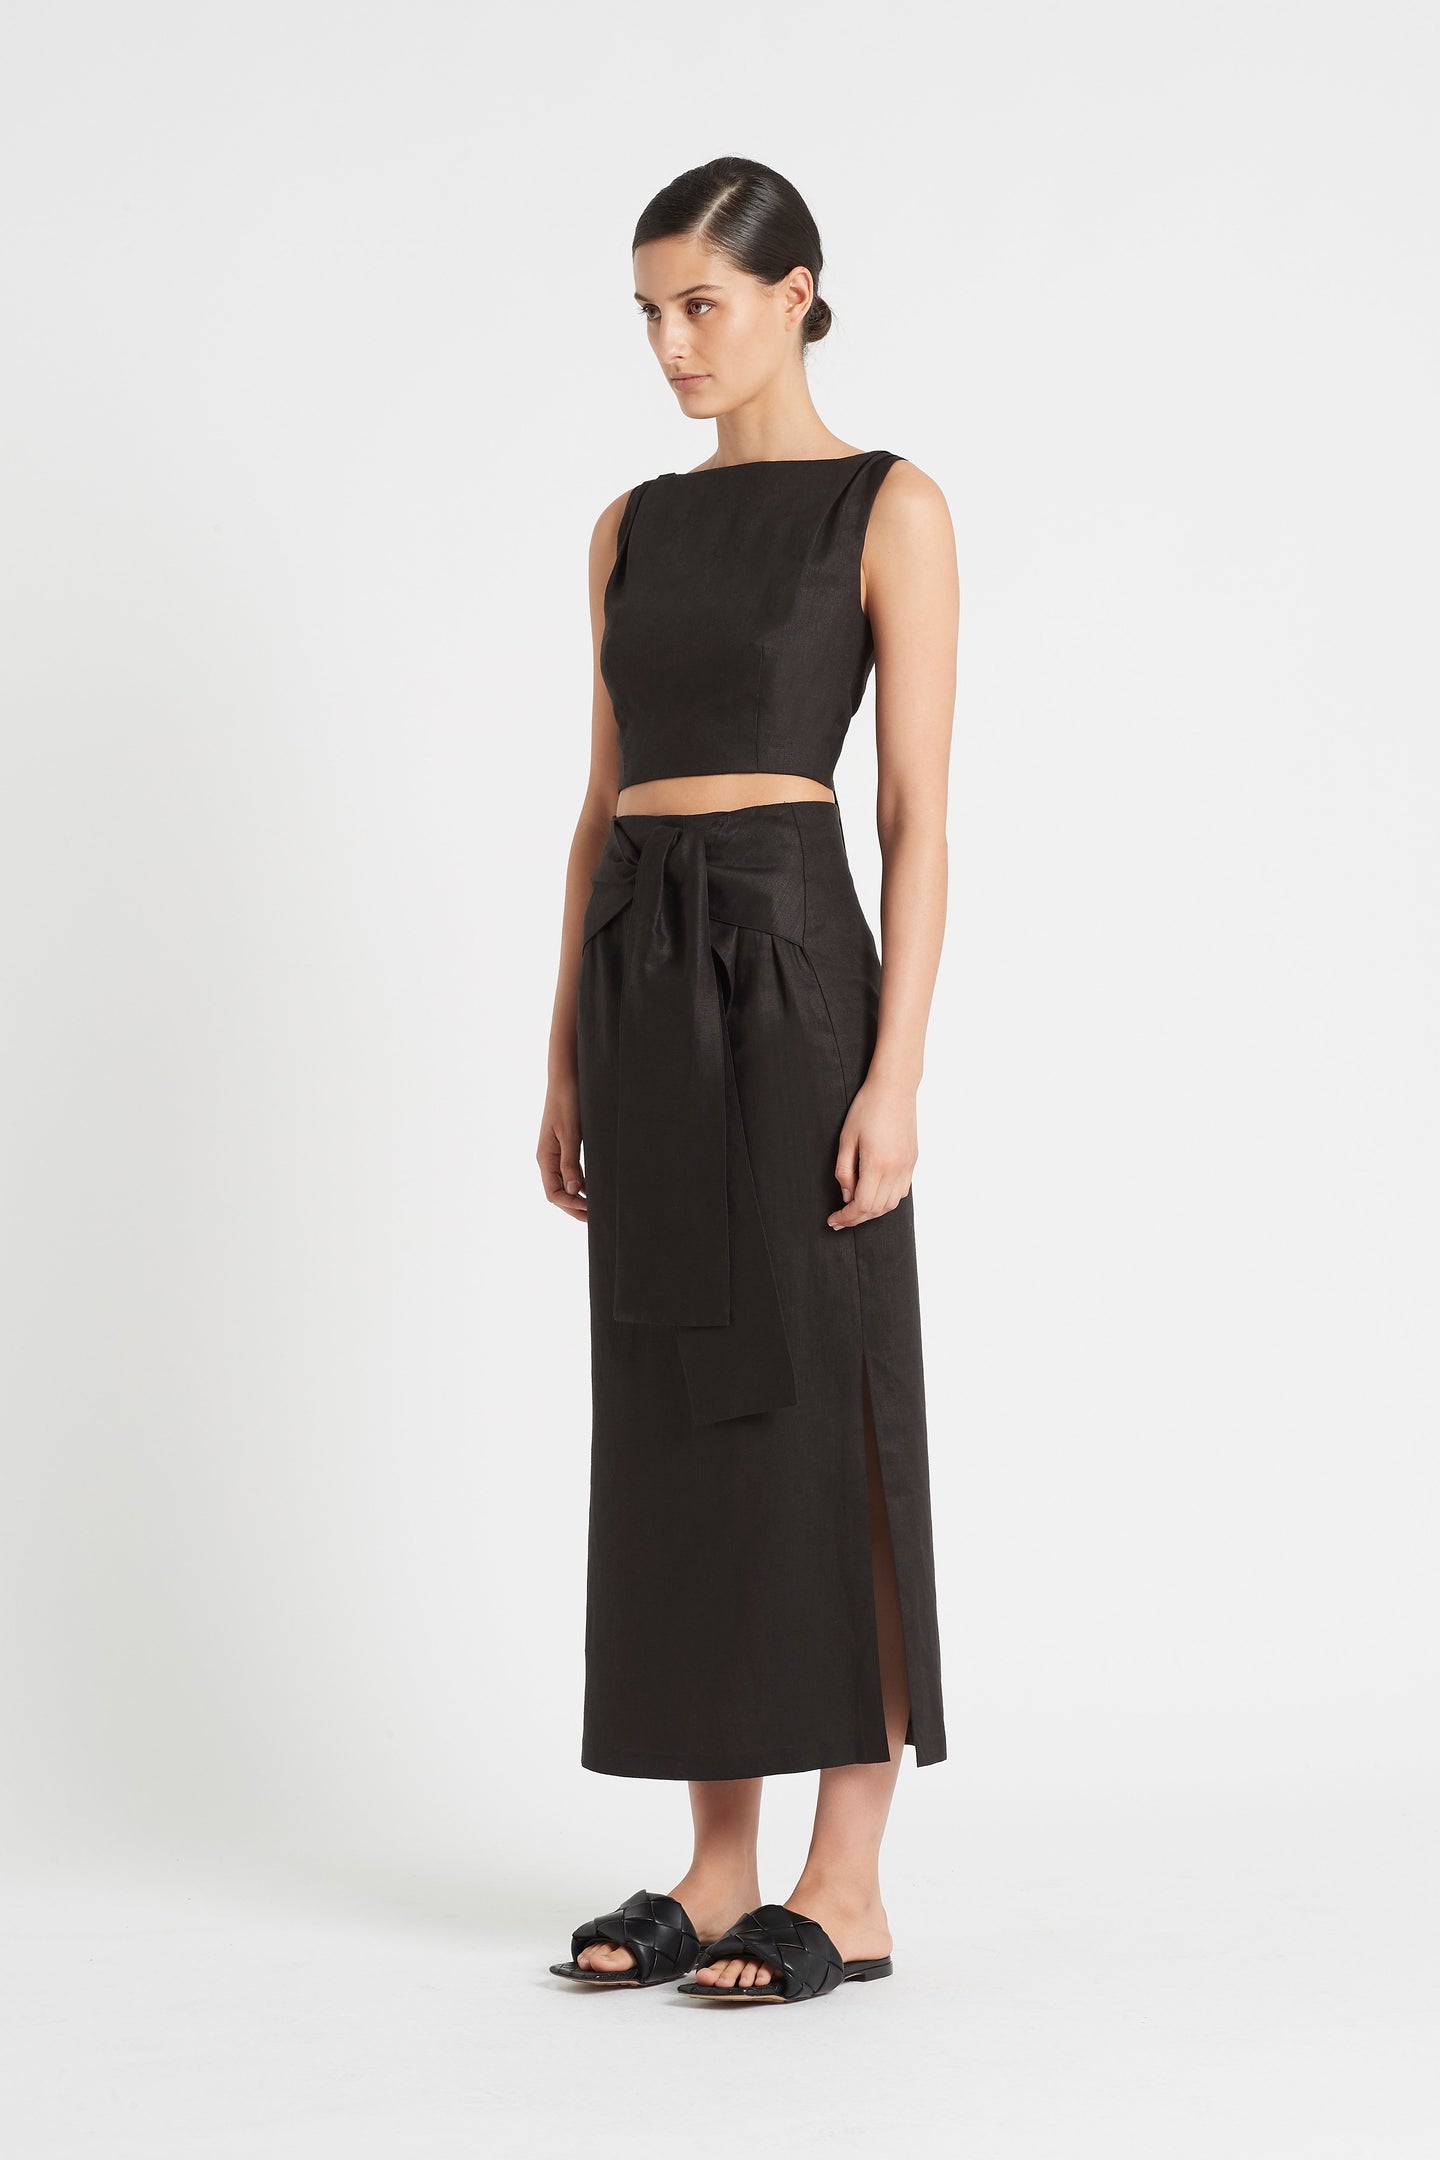 SIR the label AMBROISE TIE TOP BLACK